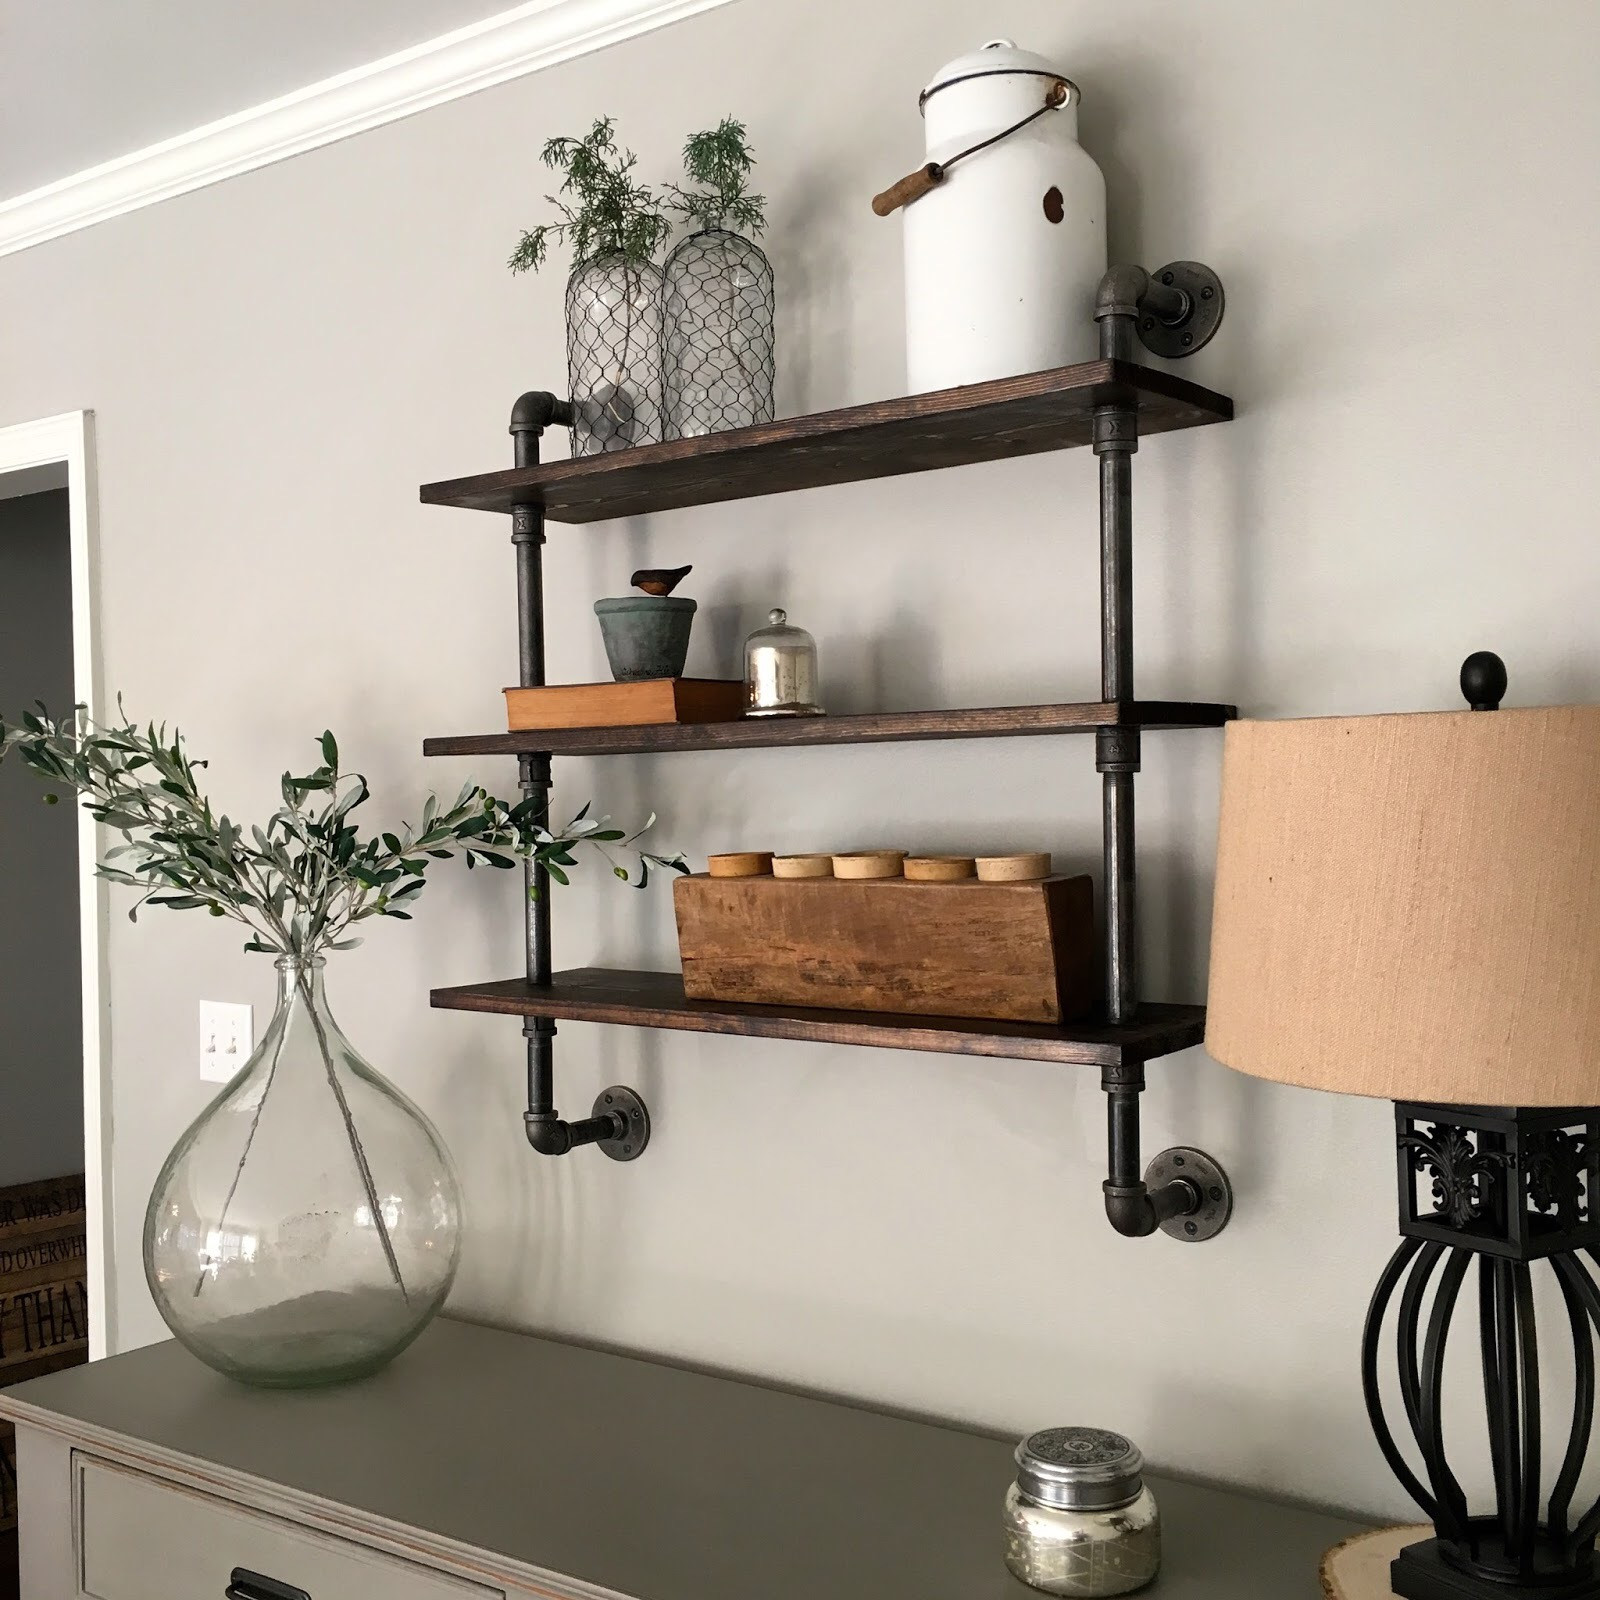 Best ideas about DIY Pipe Shelves . Save or Pin DIY Pipe Shelving Mindfully Gray Now.